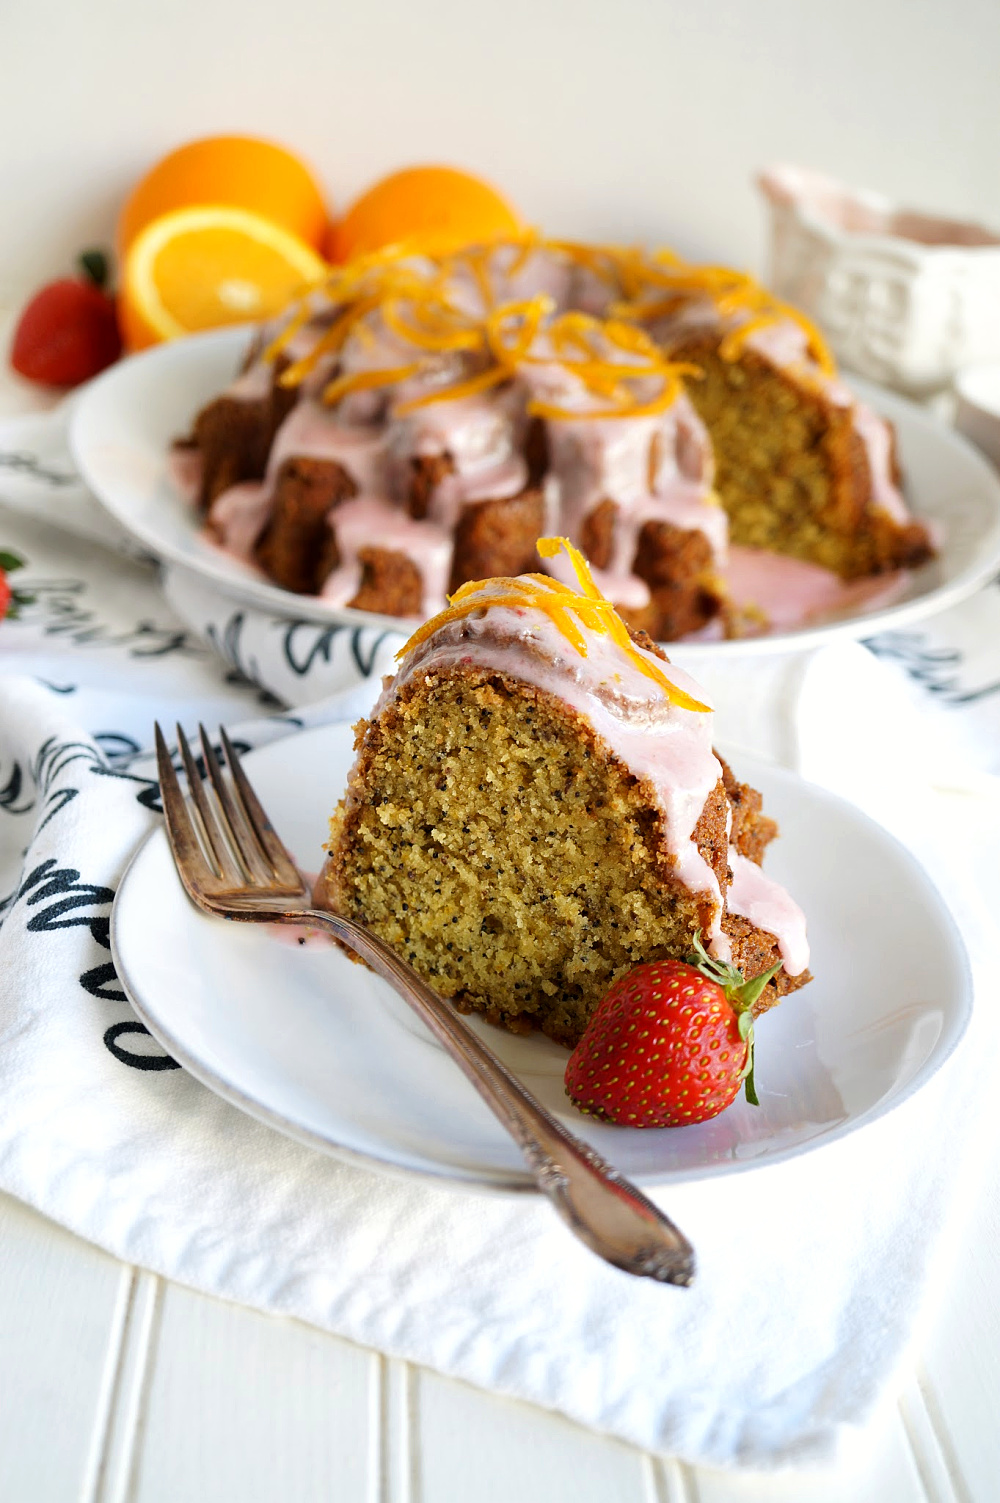 slice of orange poppyseed bundt cake